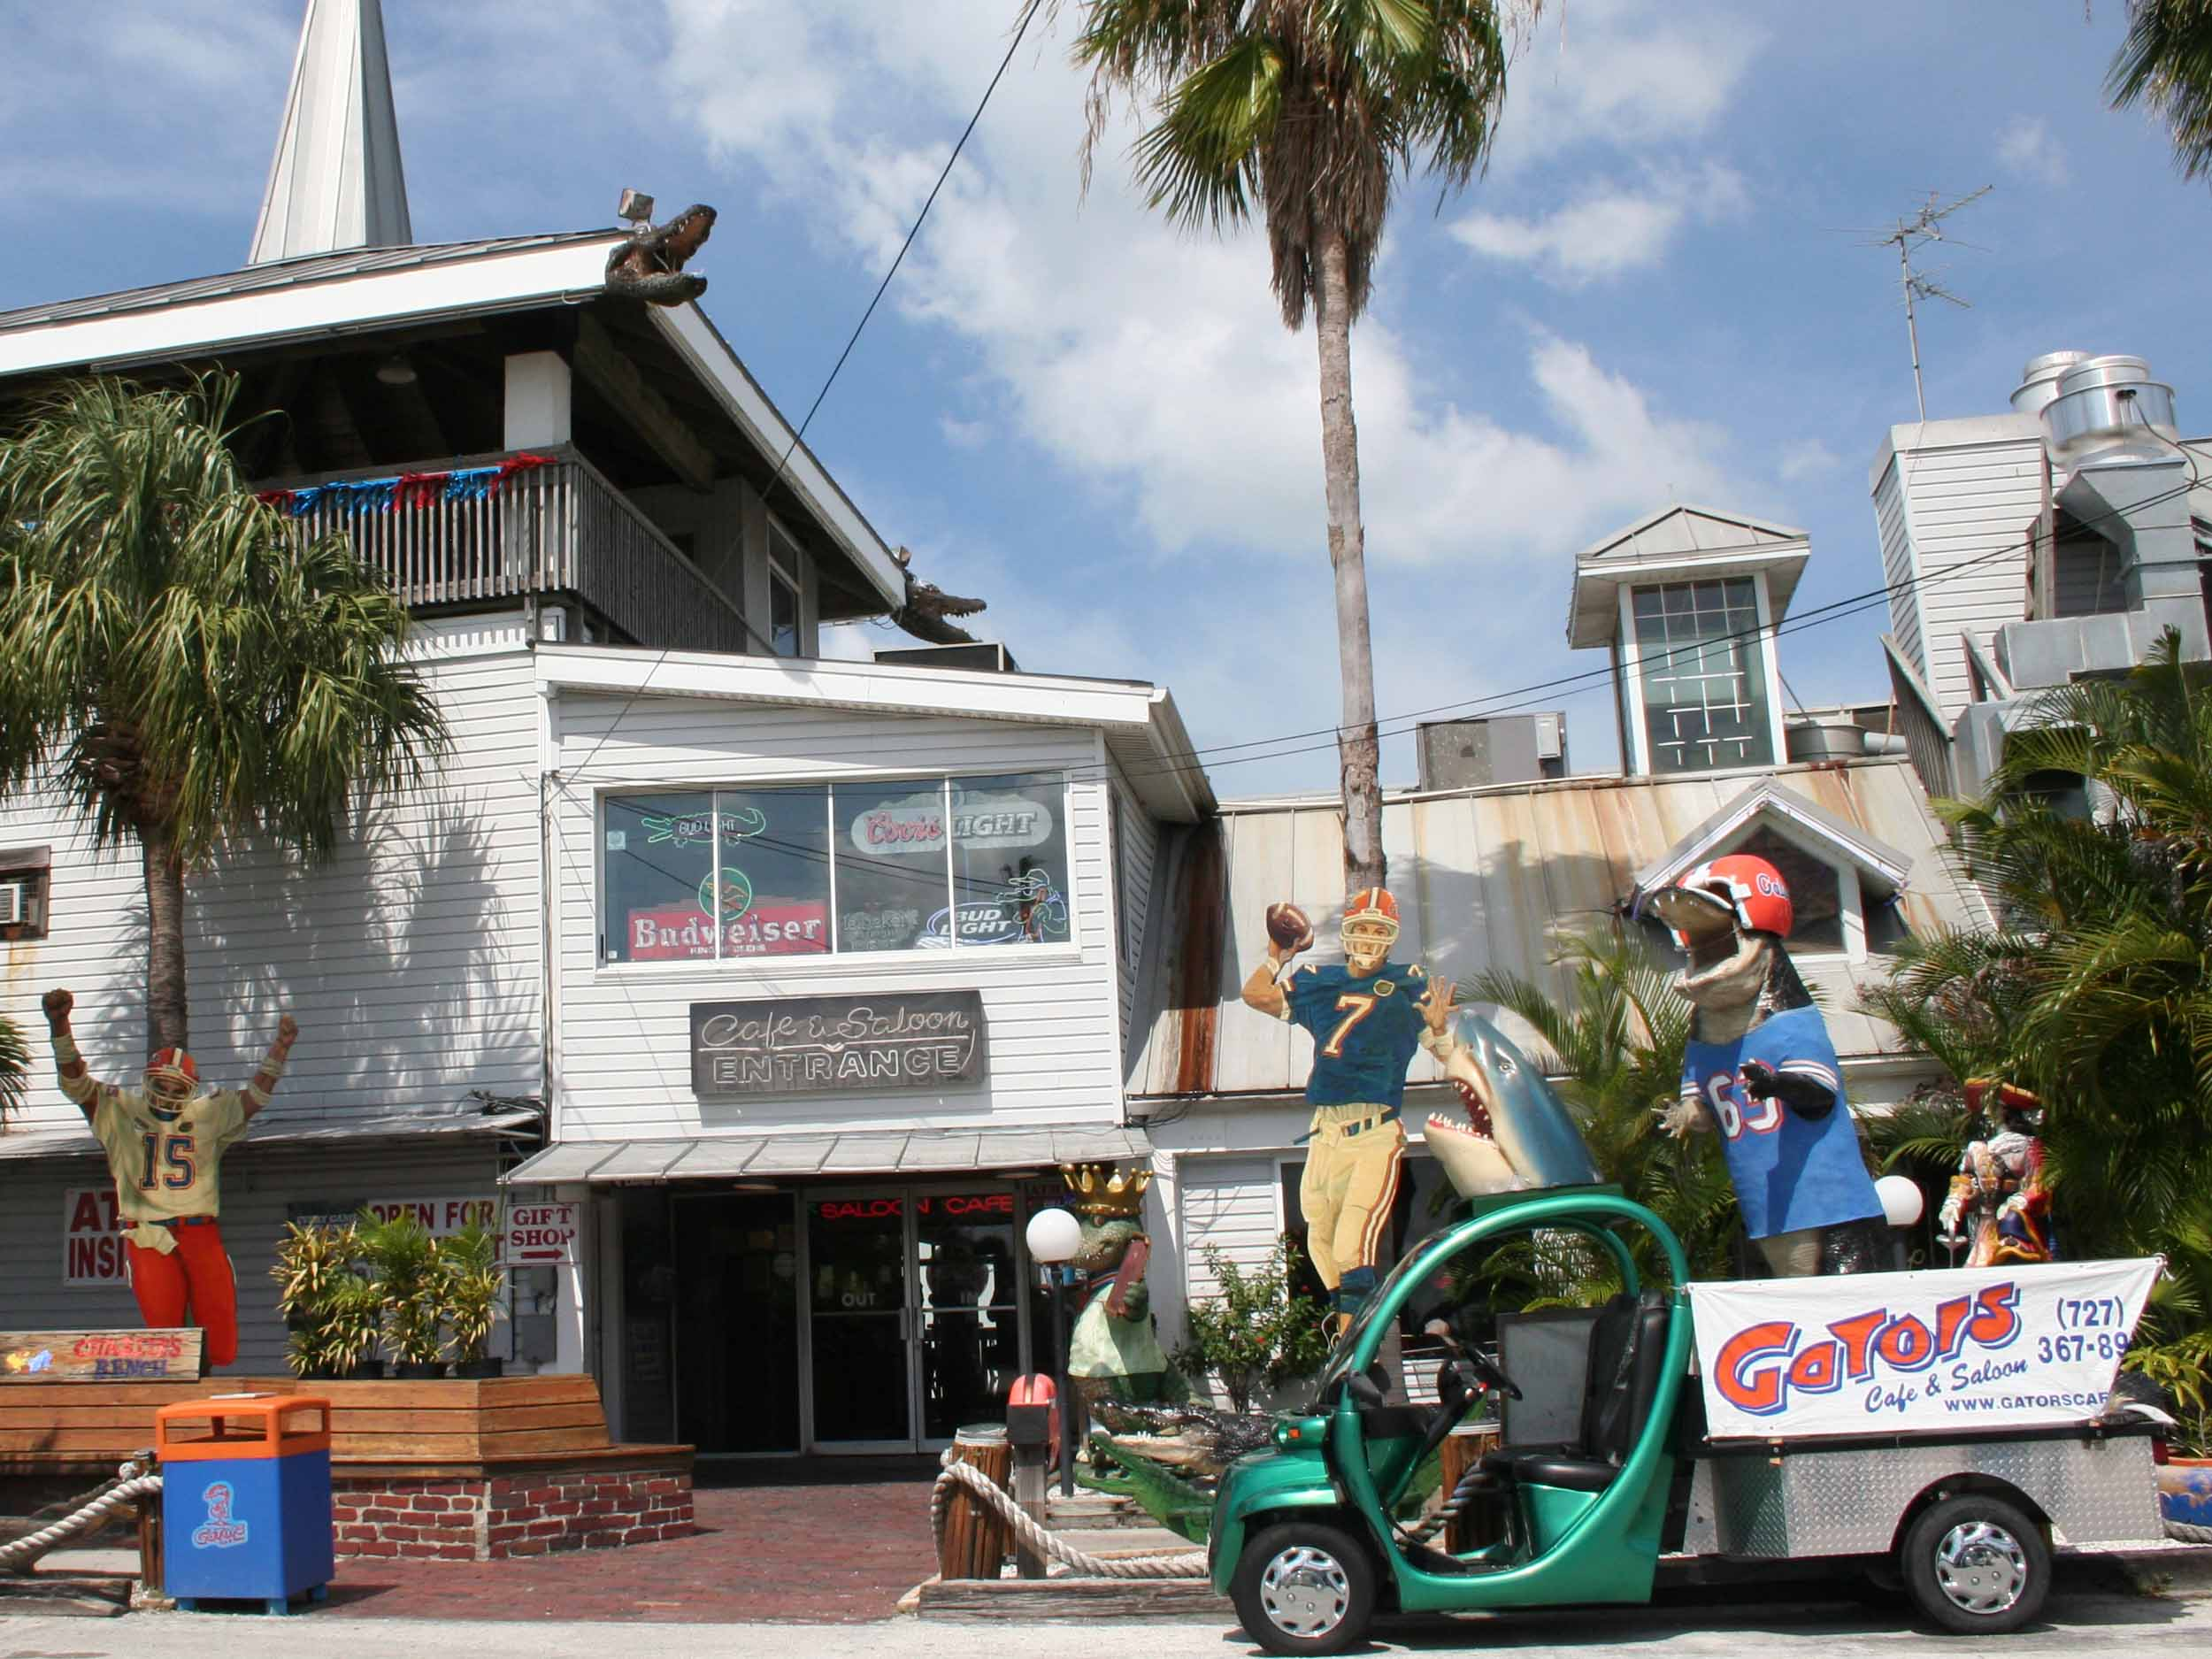 Gator's Cafe and Saloon Exterior